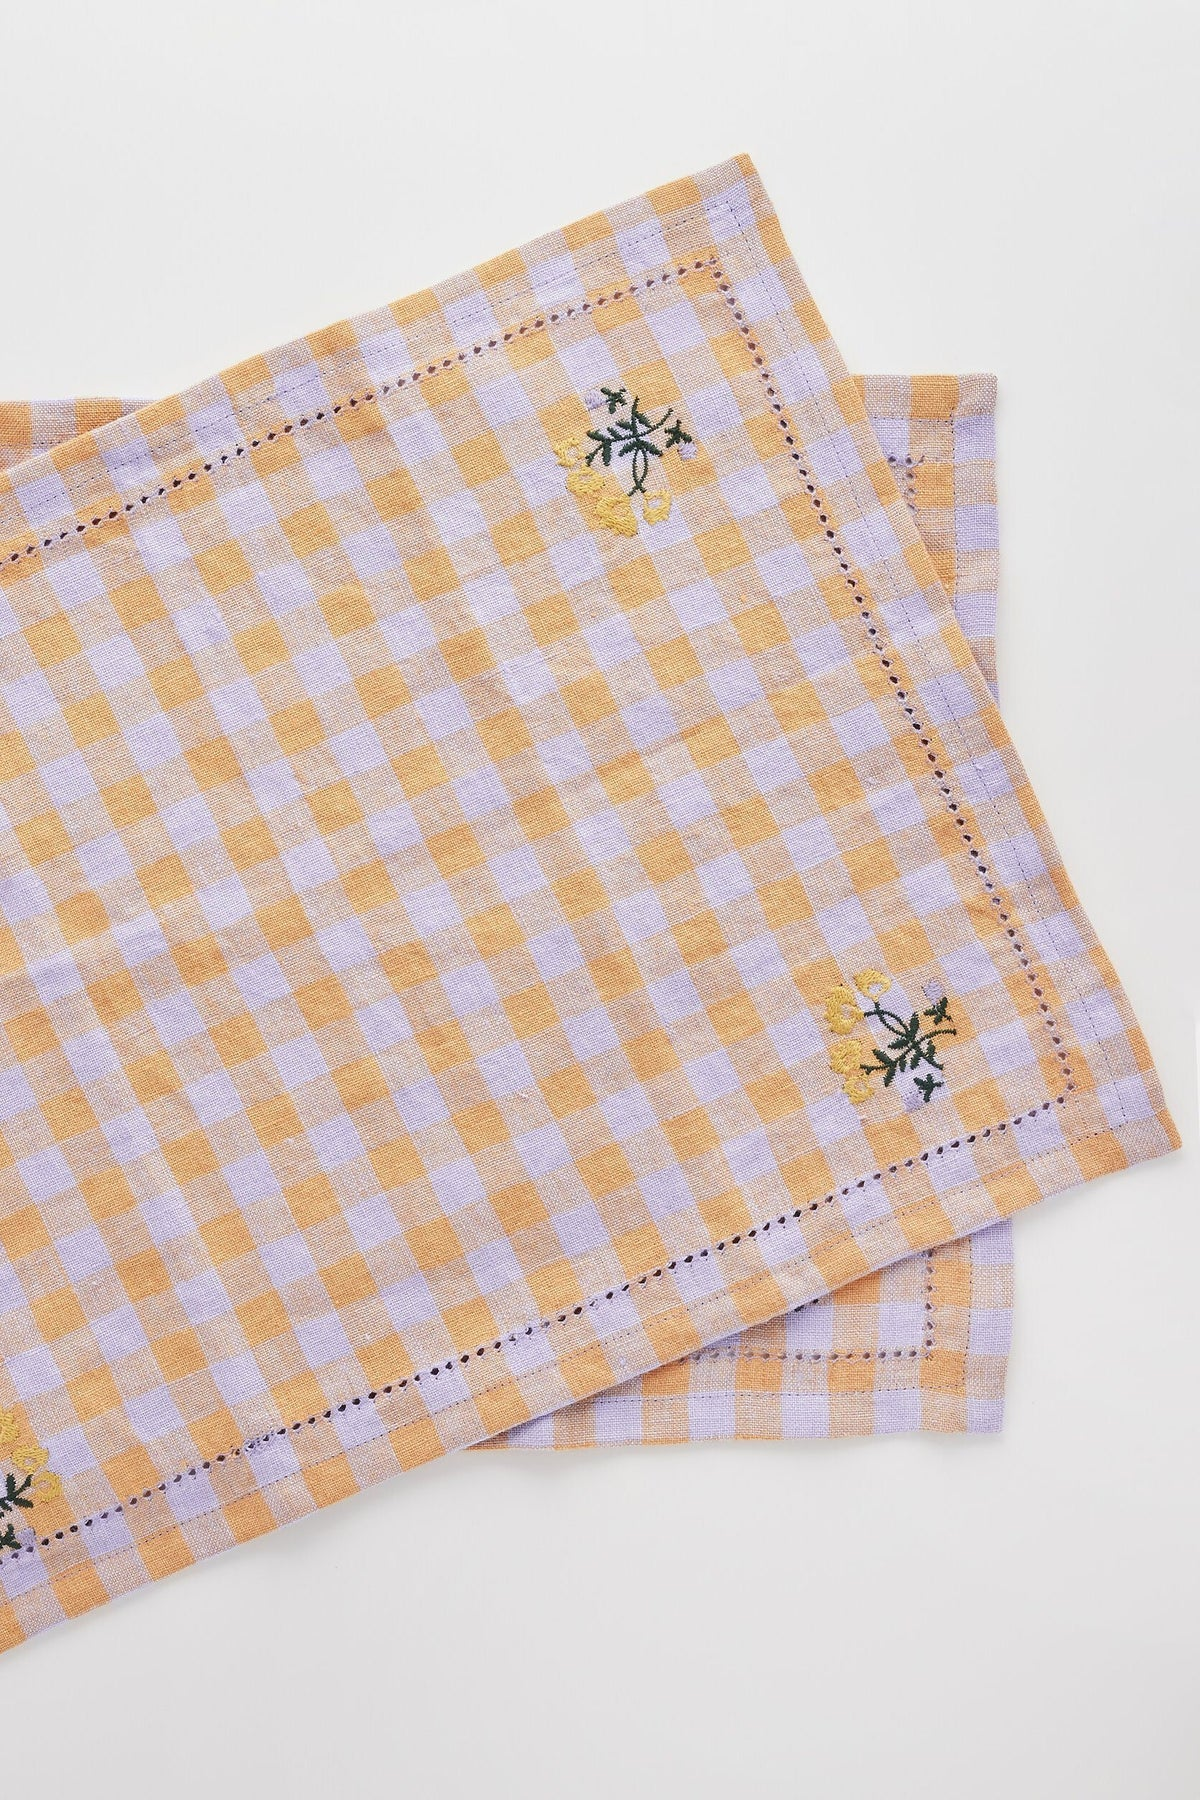 Gingham Embroidered Placement/Napkin - Apricot Soft Furnishings Projekti Tynny